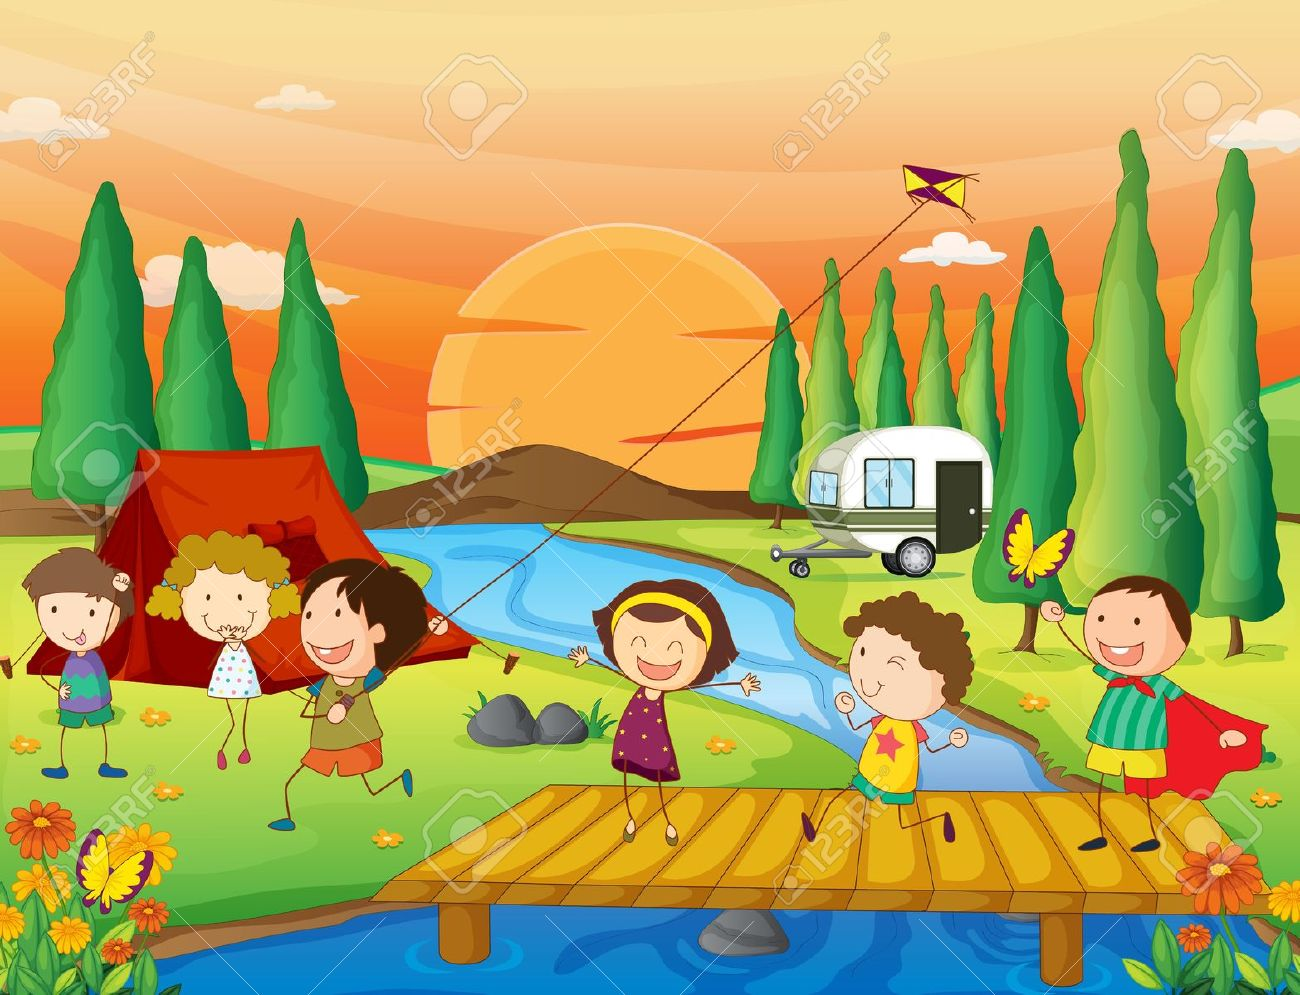 Illustration Of Kids Playing In Beautiful Nature Royalty Free.